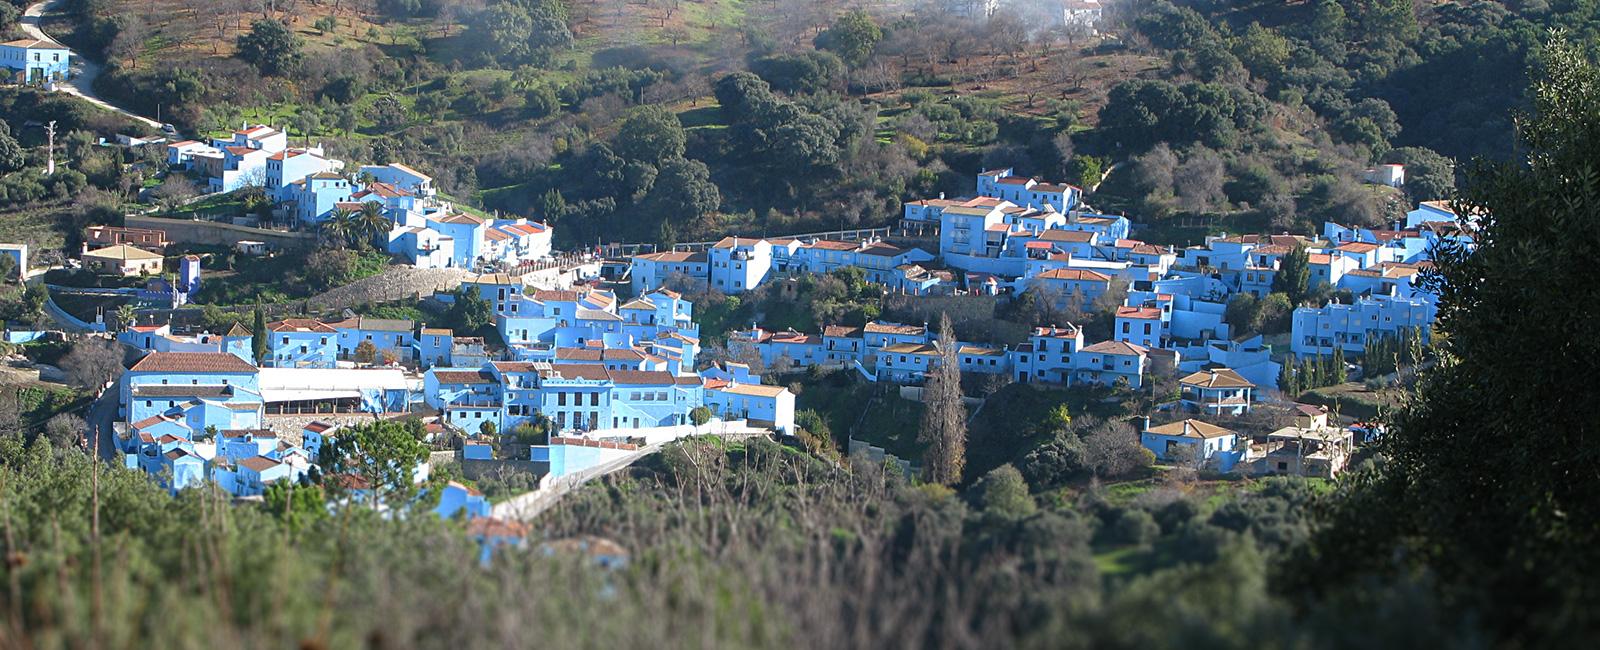 The Smurf blue village Júzcar from a distance